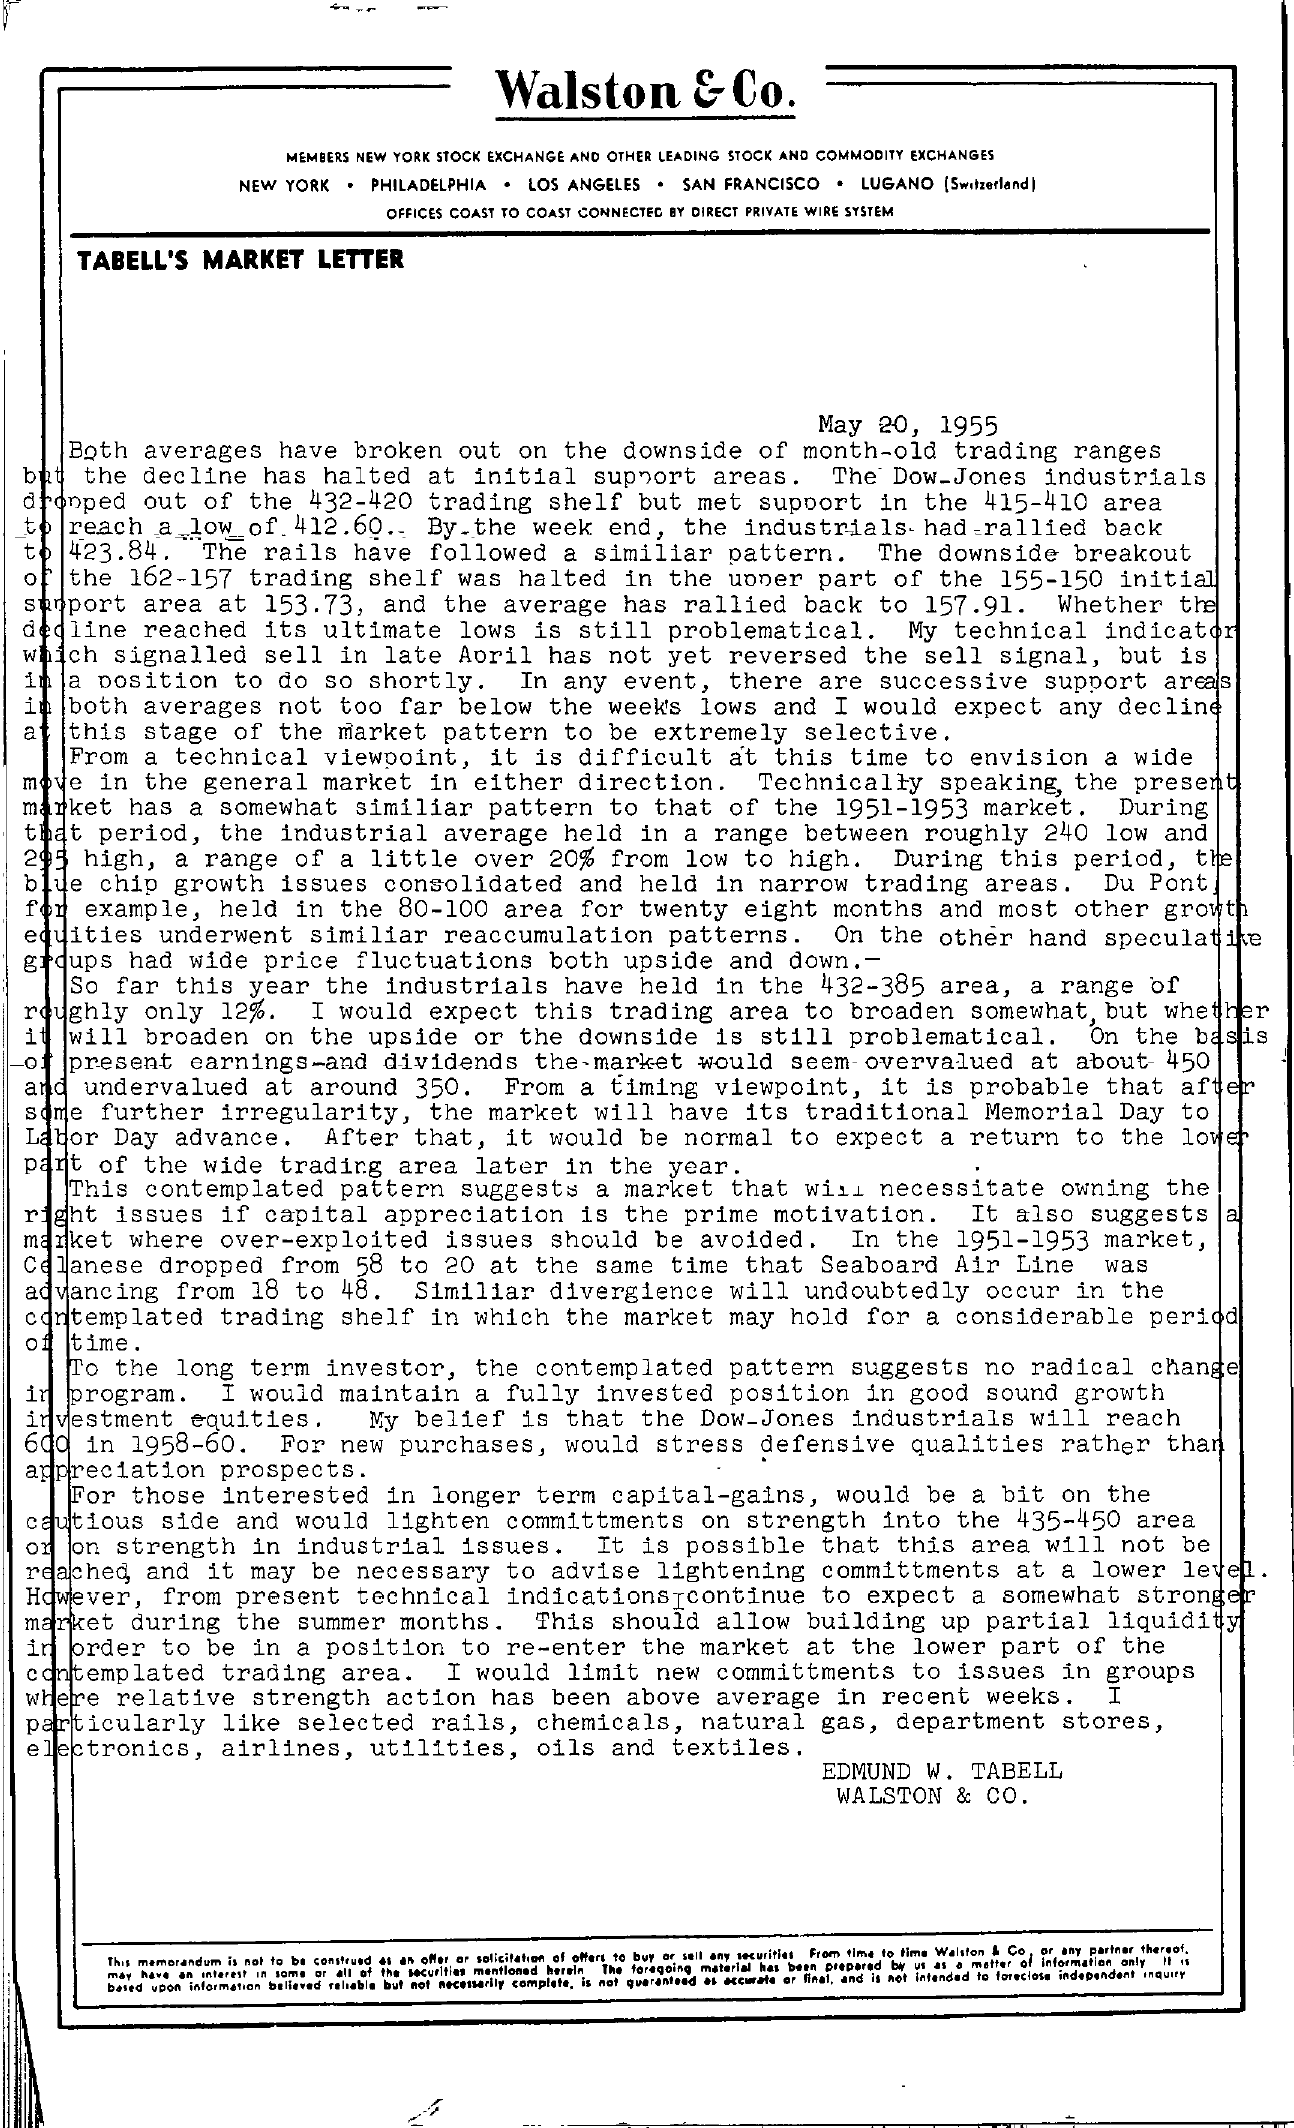 Tabell's Market Letter - May 20, 1955